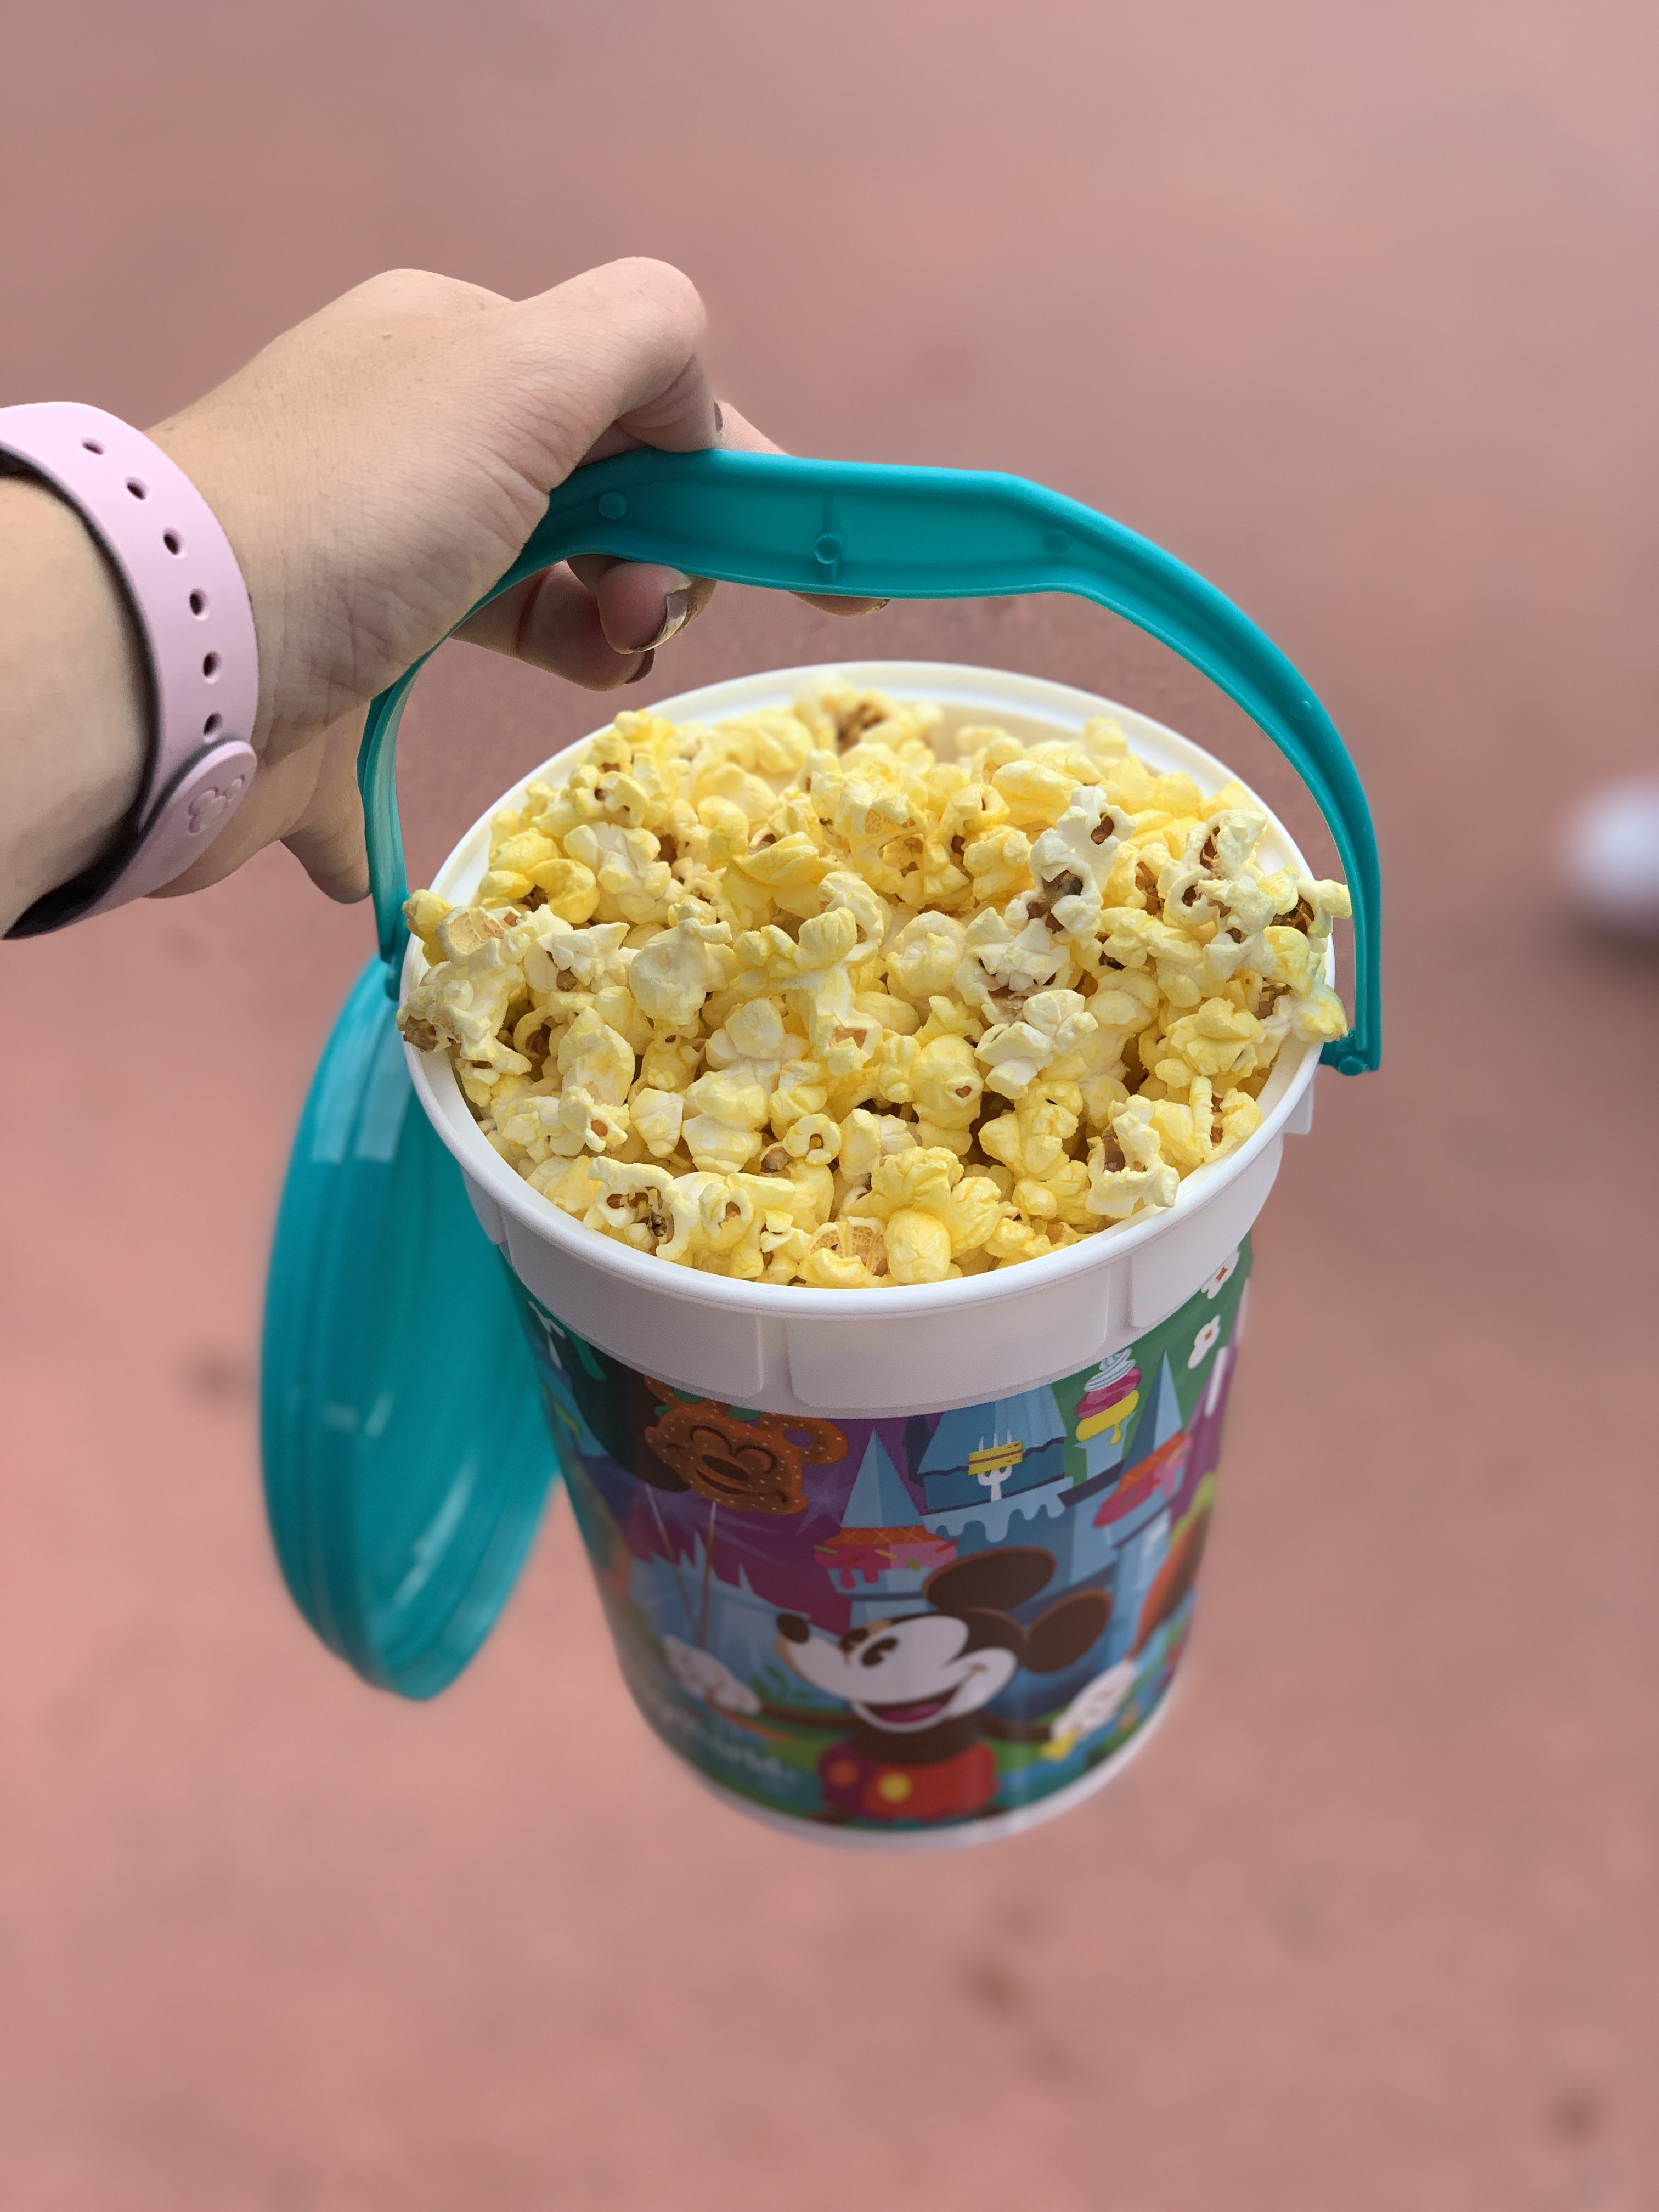 How to save money at Disney - refillable popcorn bucket.